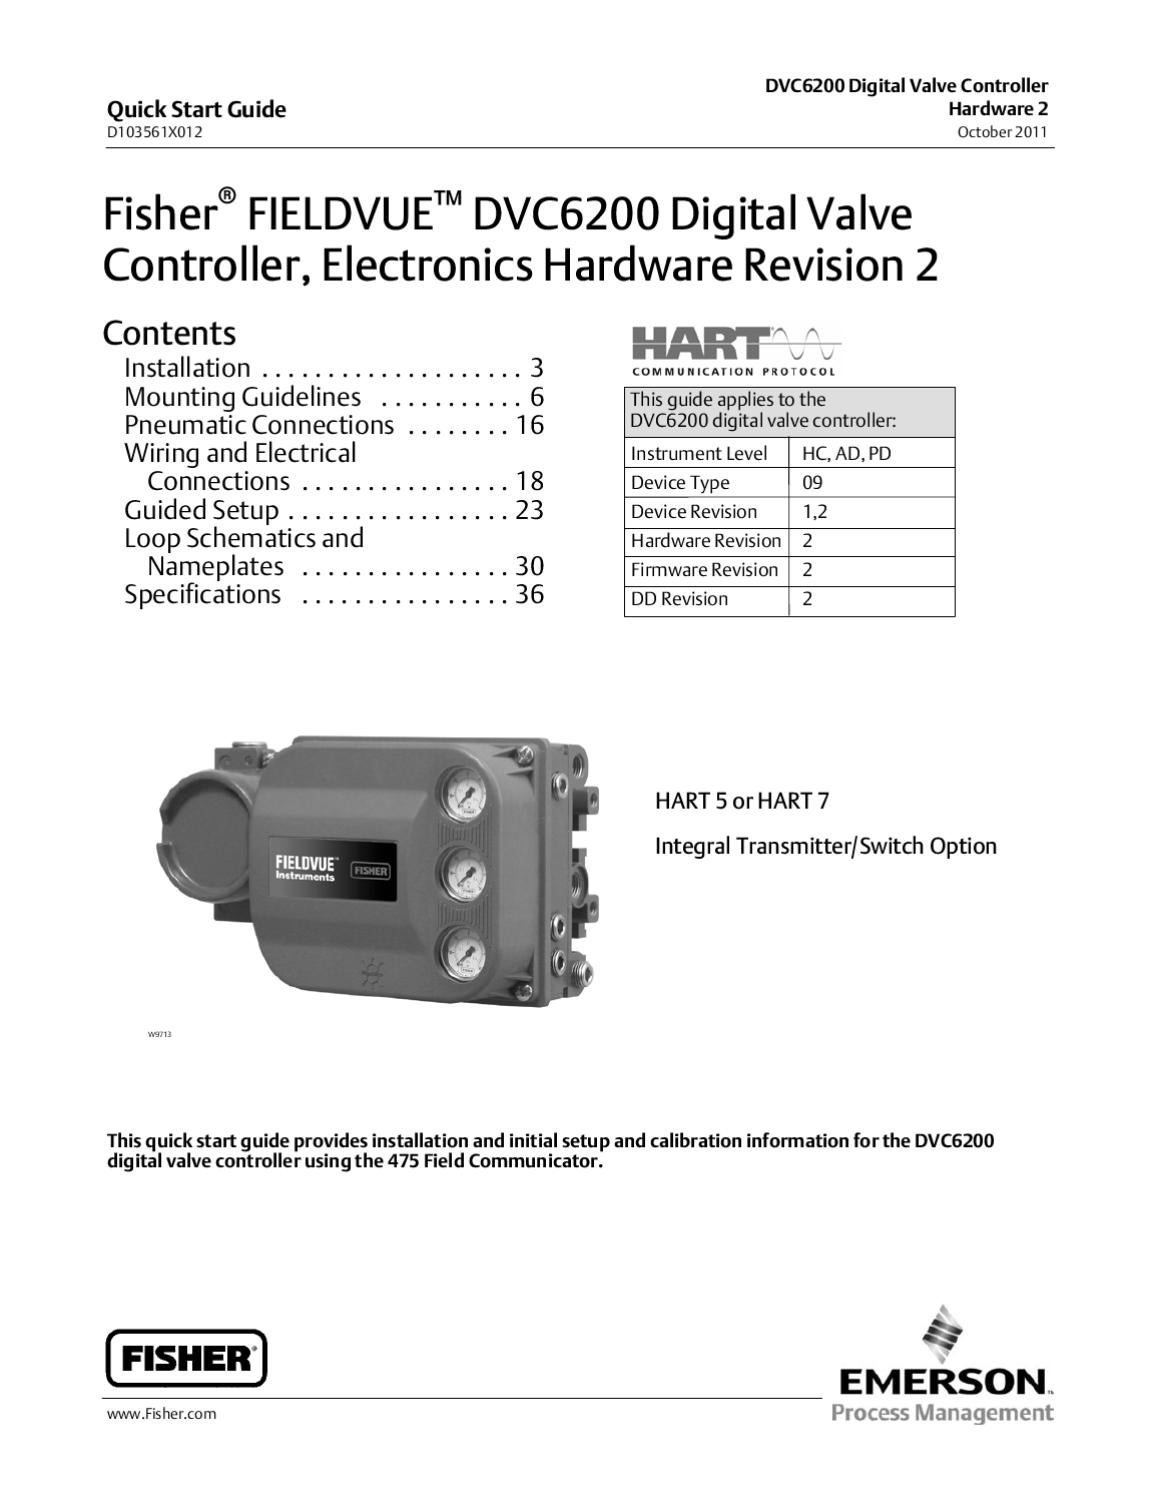 page_1 dvc6200 quick start guide elctrncs hrdwre rev 2 oct 2011 by rmc fisher dvc 2000 wiring diagram at bayanpartner.co